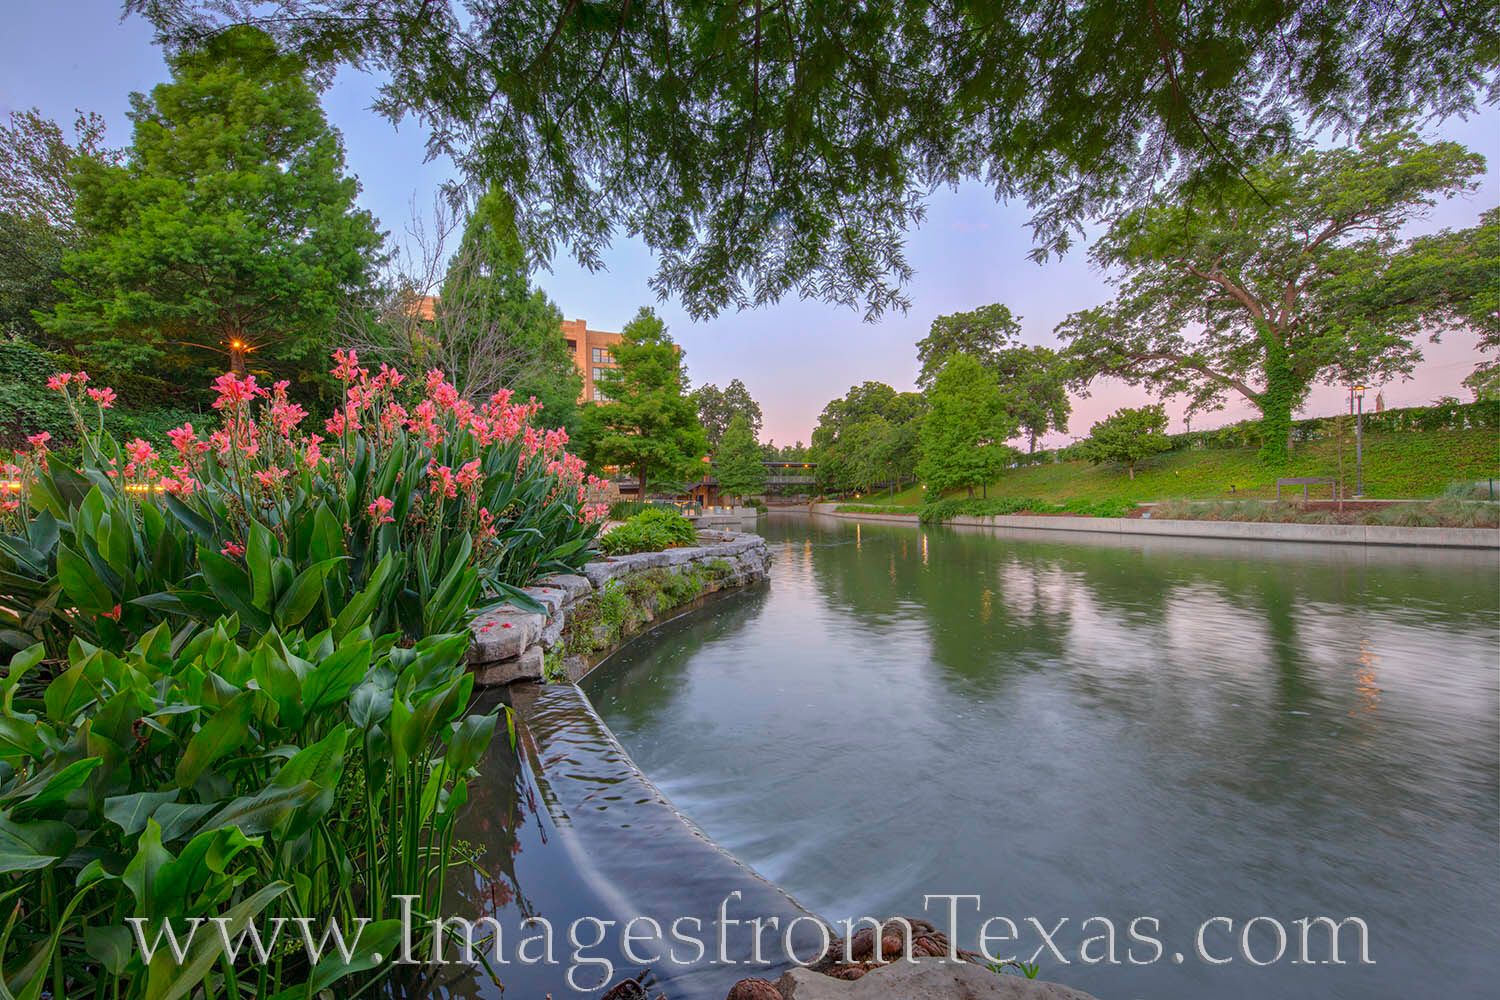 A little before sunrise, the sky was soft and pastel near downtown San Antonio. This area sees the San Antonio River flow gently...